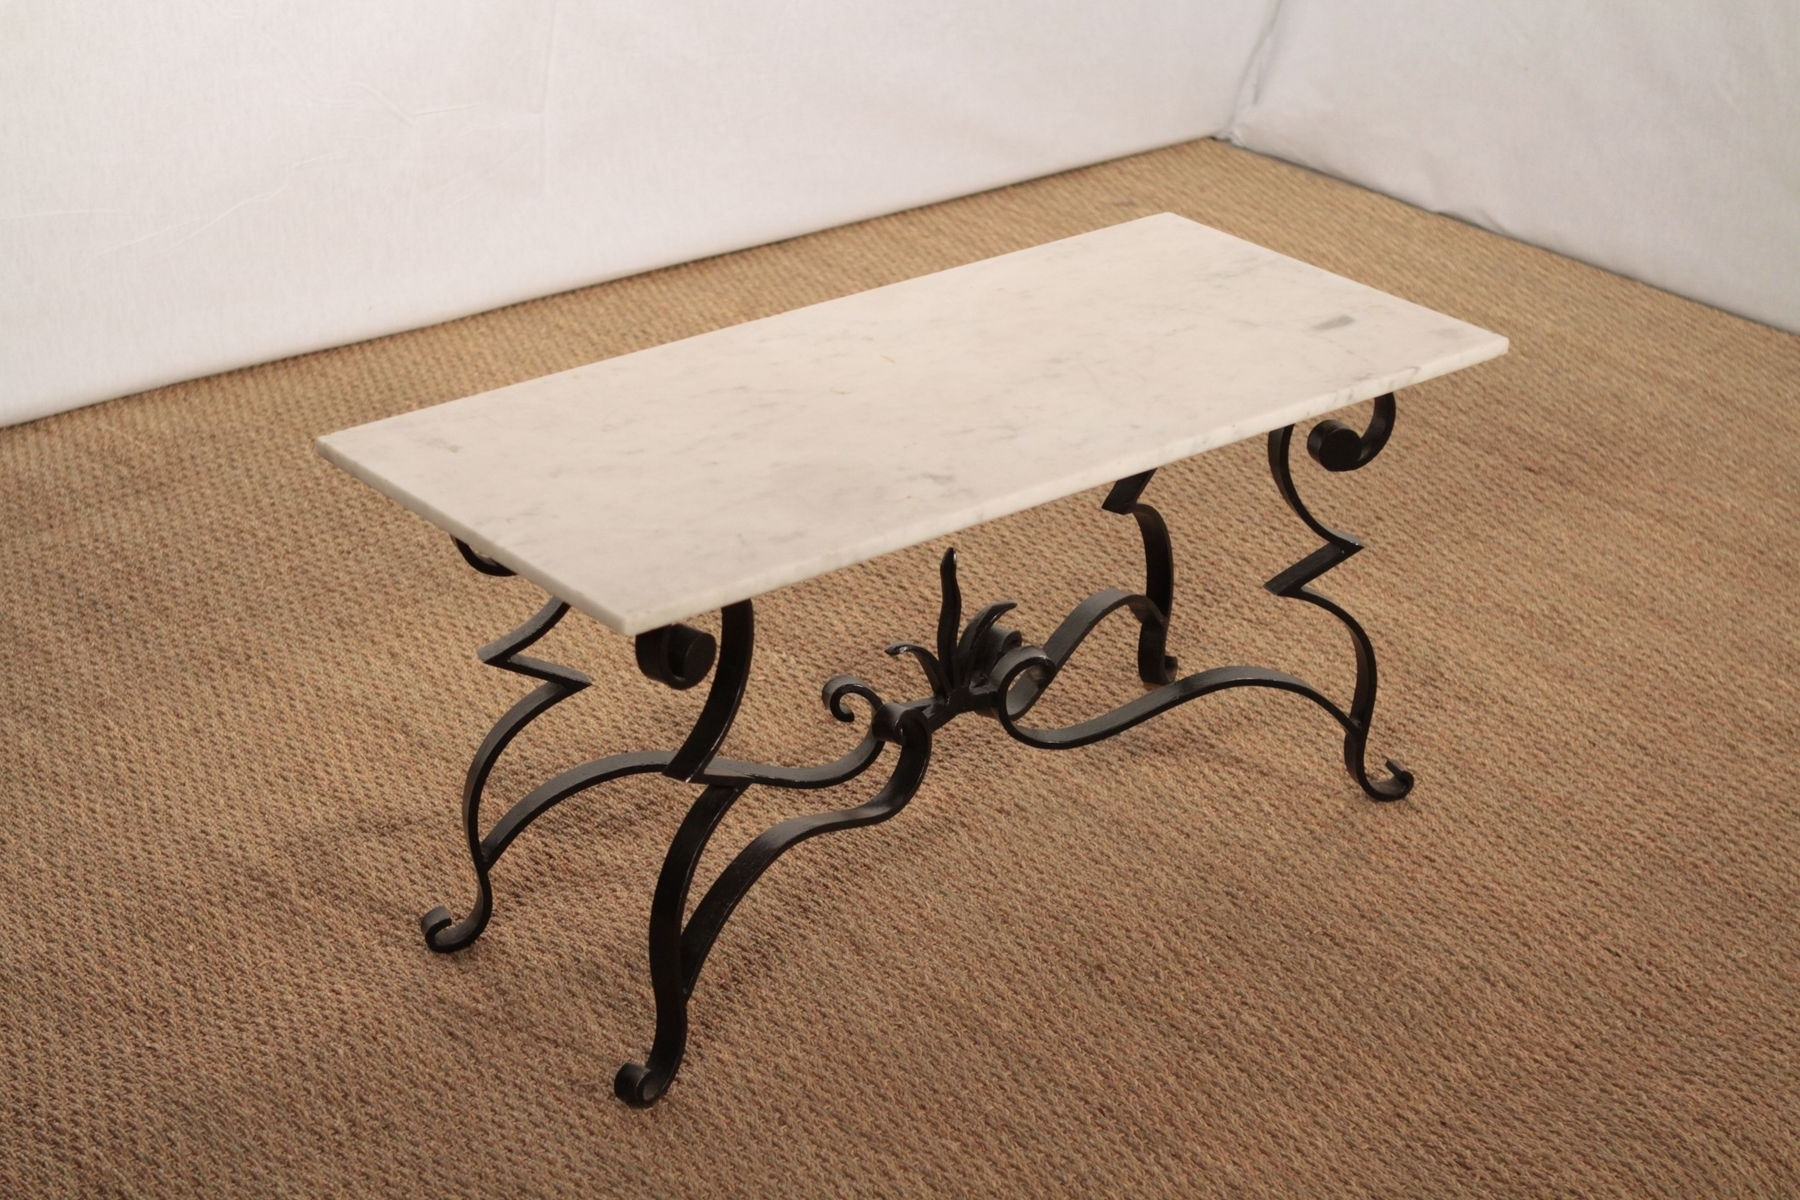 Wrought Iron And Marble Coffee Table For Sale At Pamono Regarding Current Iron Marble Coffee Tables (View 20 of 20)